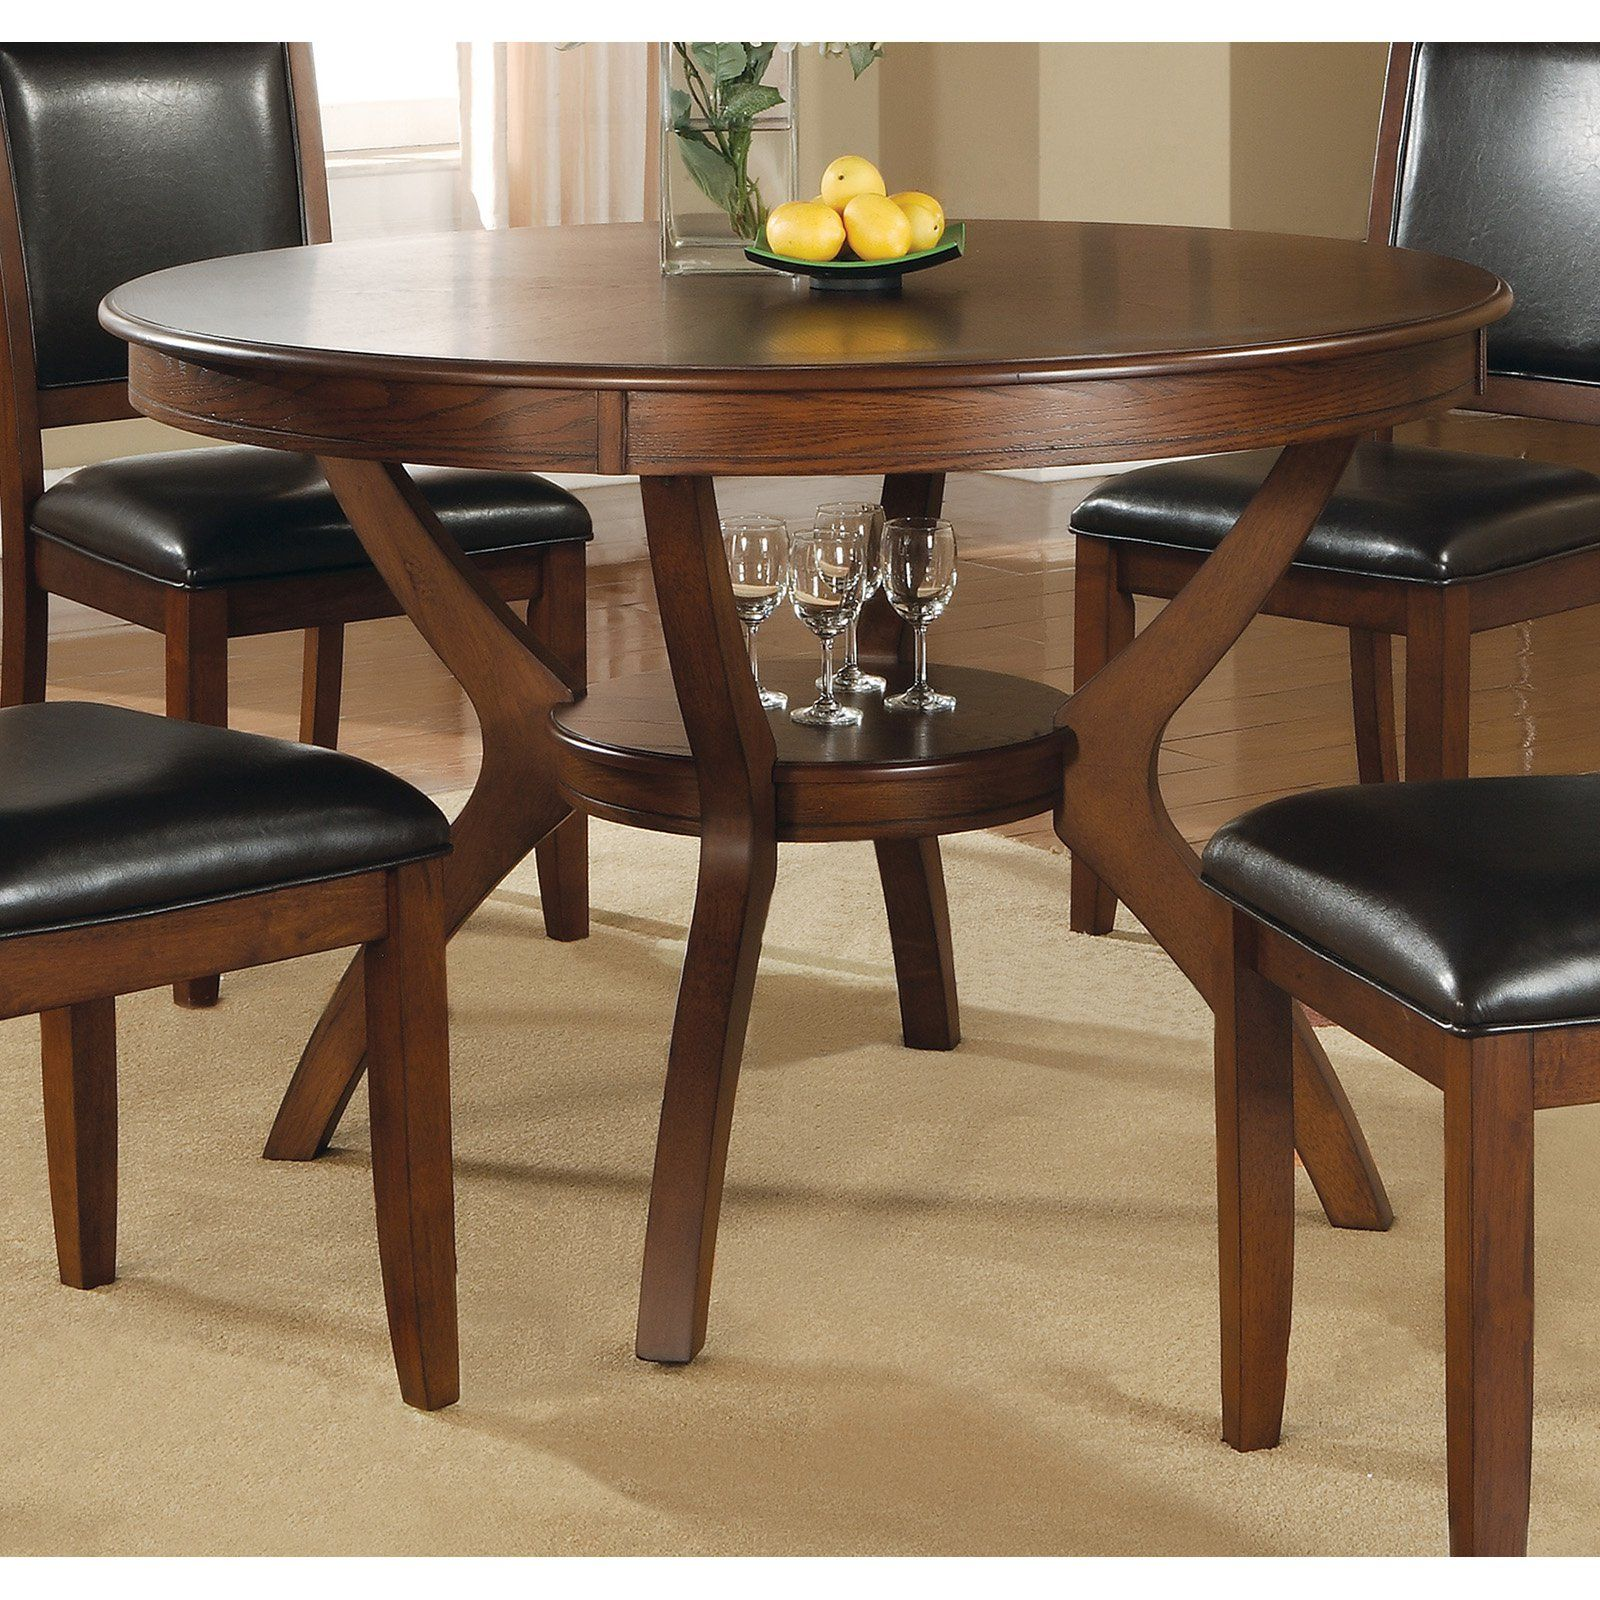 Pin By Sk On Quick Saves In 2021 Round Dining Room Sets Round Dining Room Dining Table In Kitchen